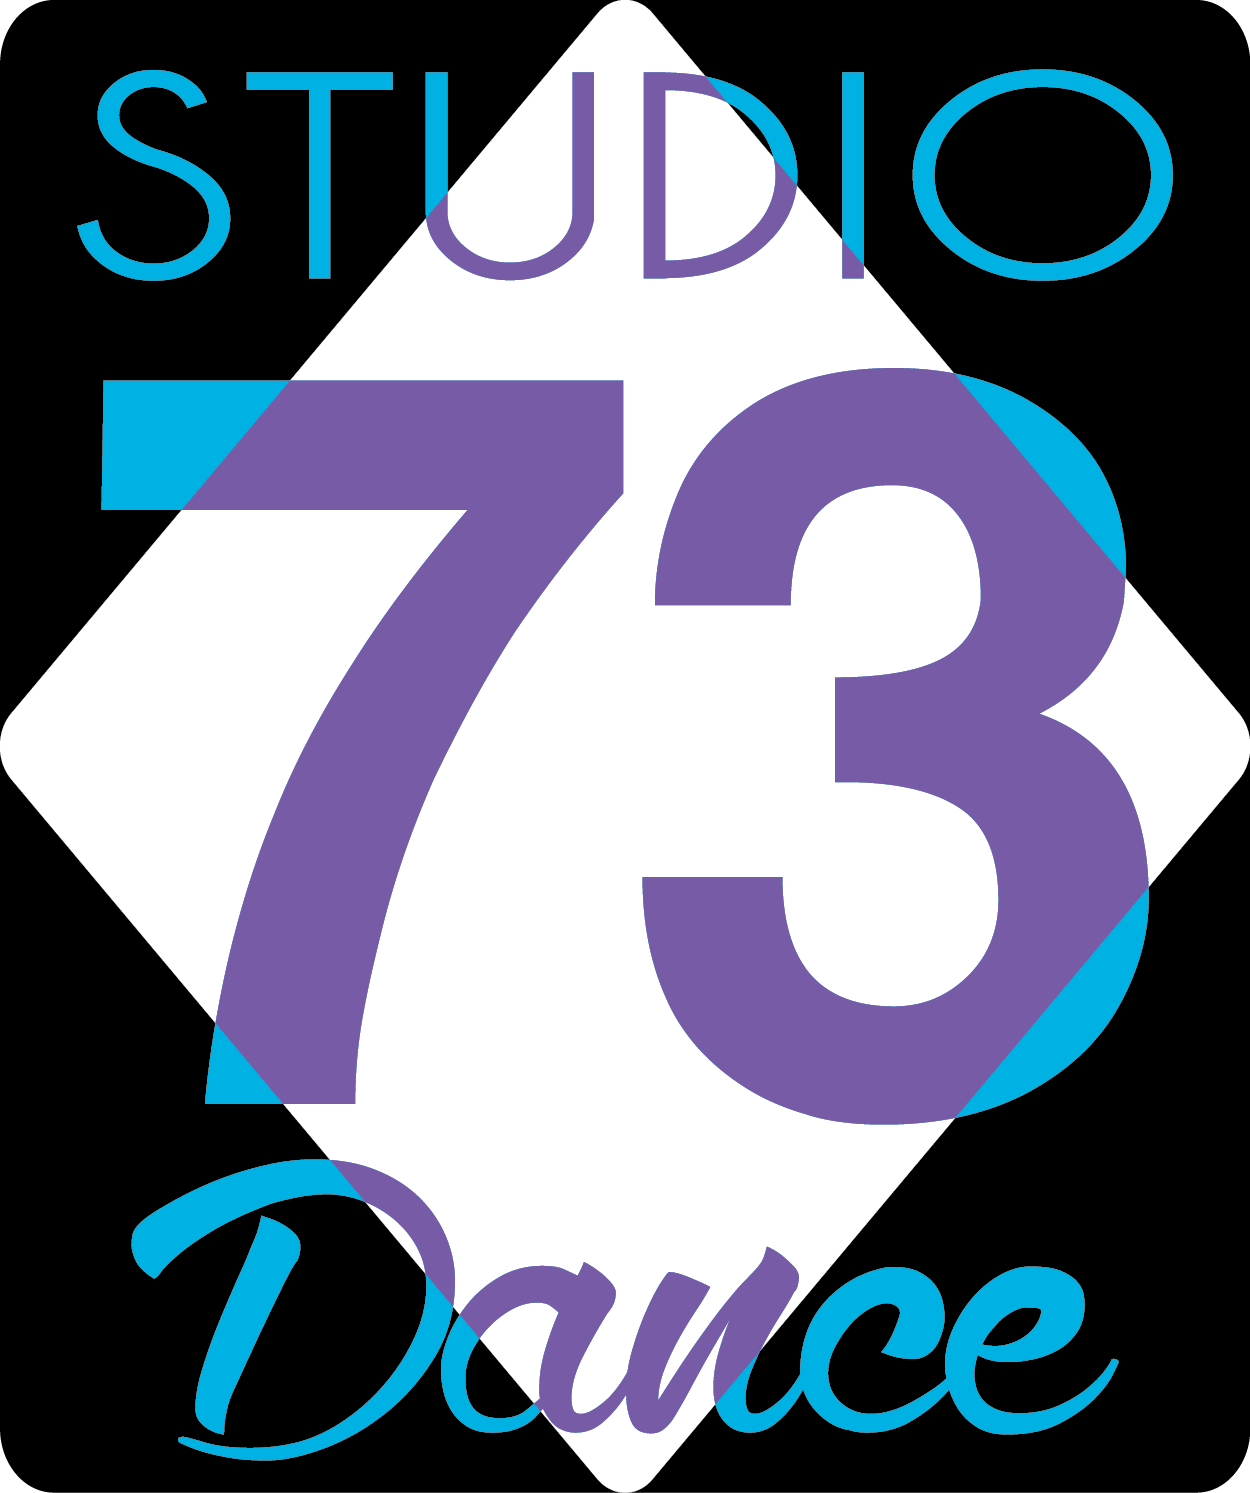 studio 73 color options